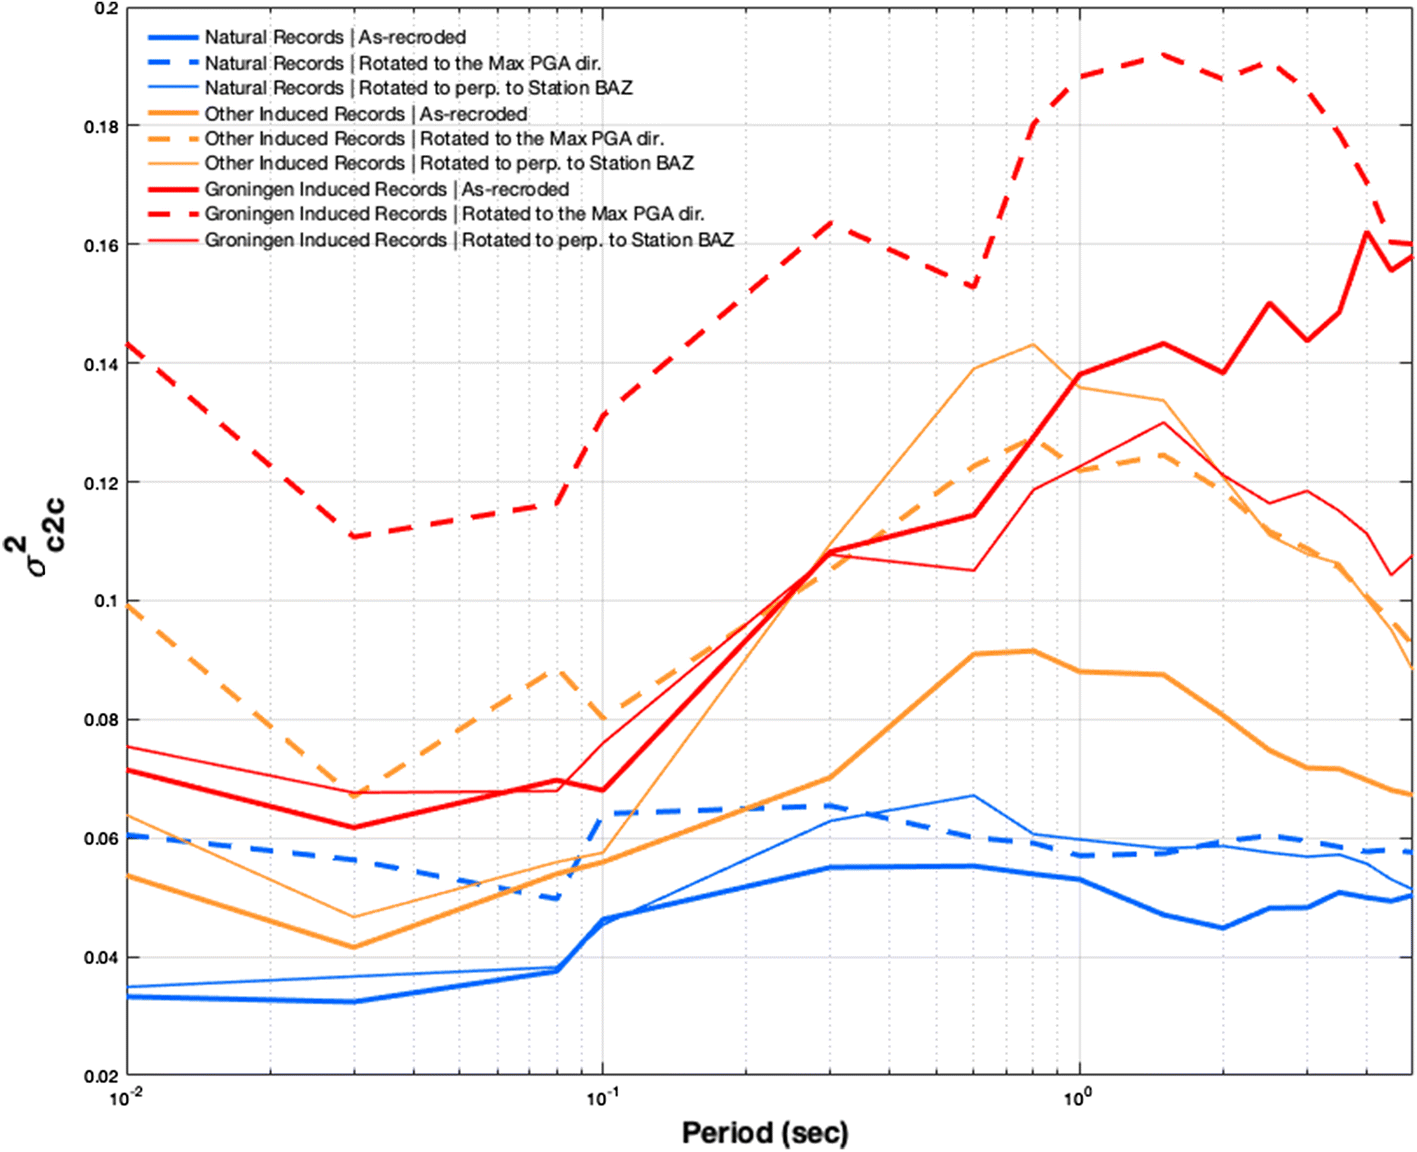 Comparison of polarity in Groningen data with that of other